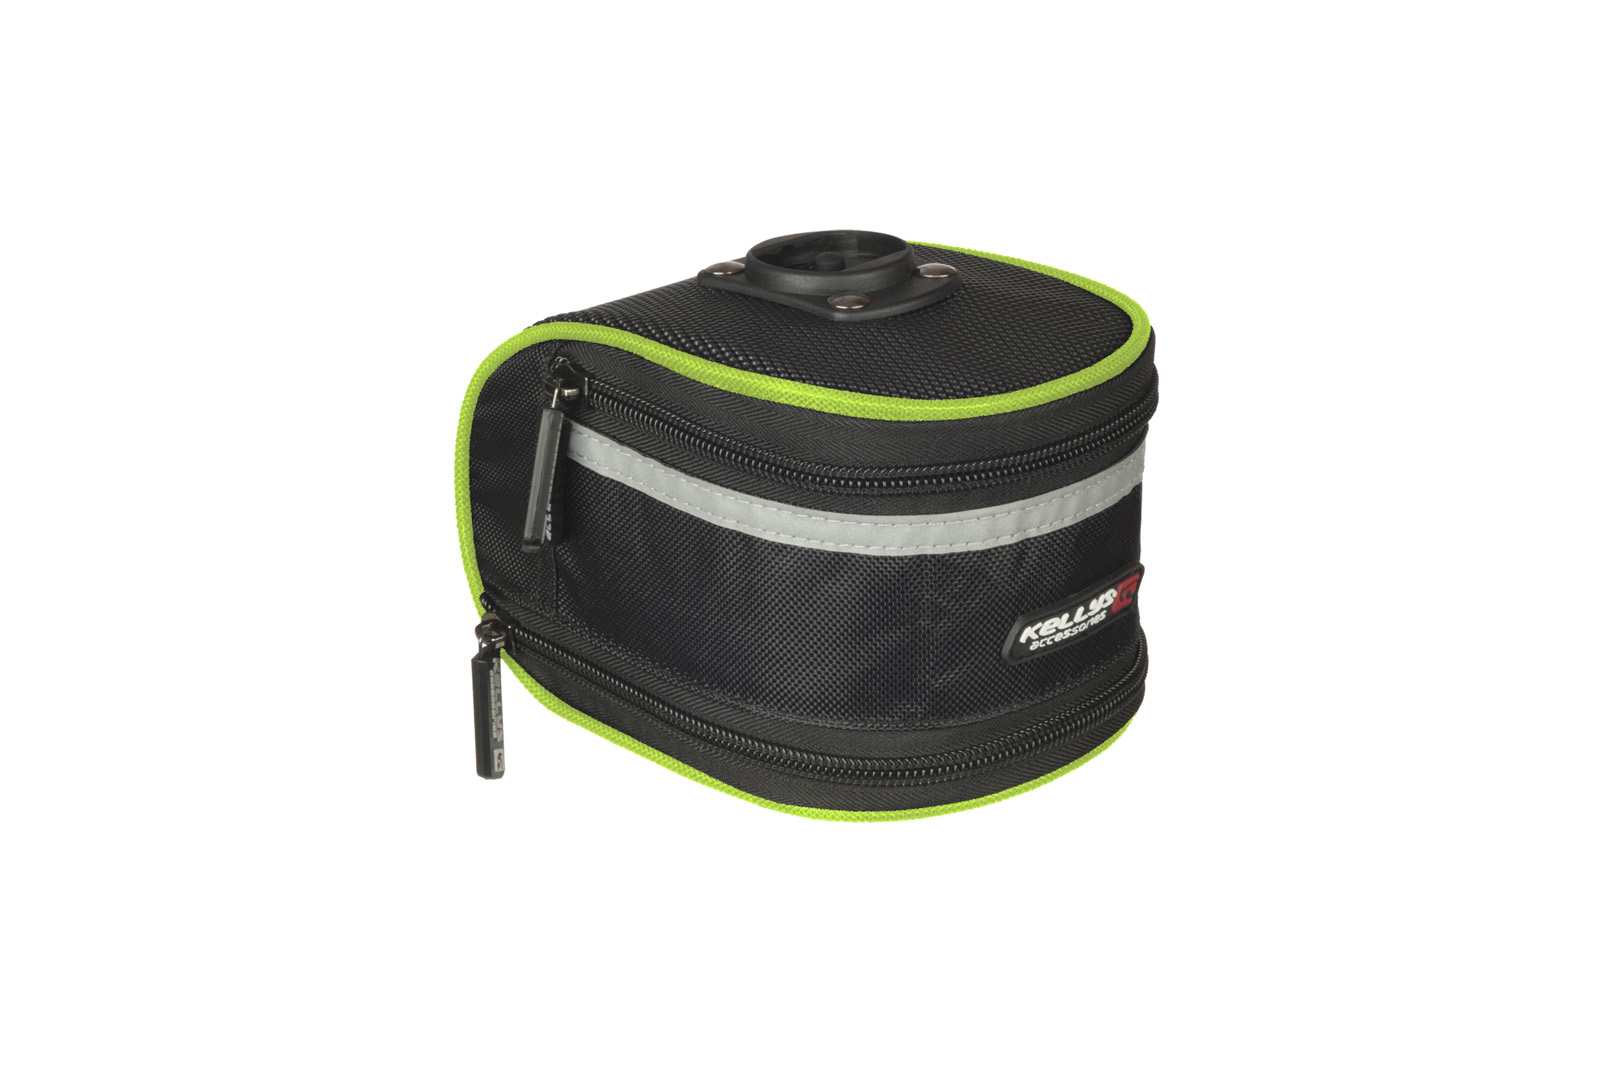 Satteltasche KELLYS HANDY black-lime green L - Satteltasche KELLYS HANDY black-lime green L